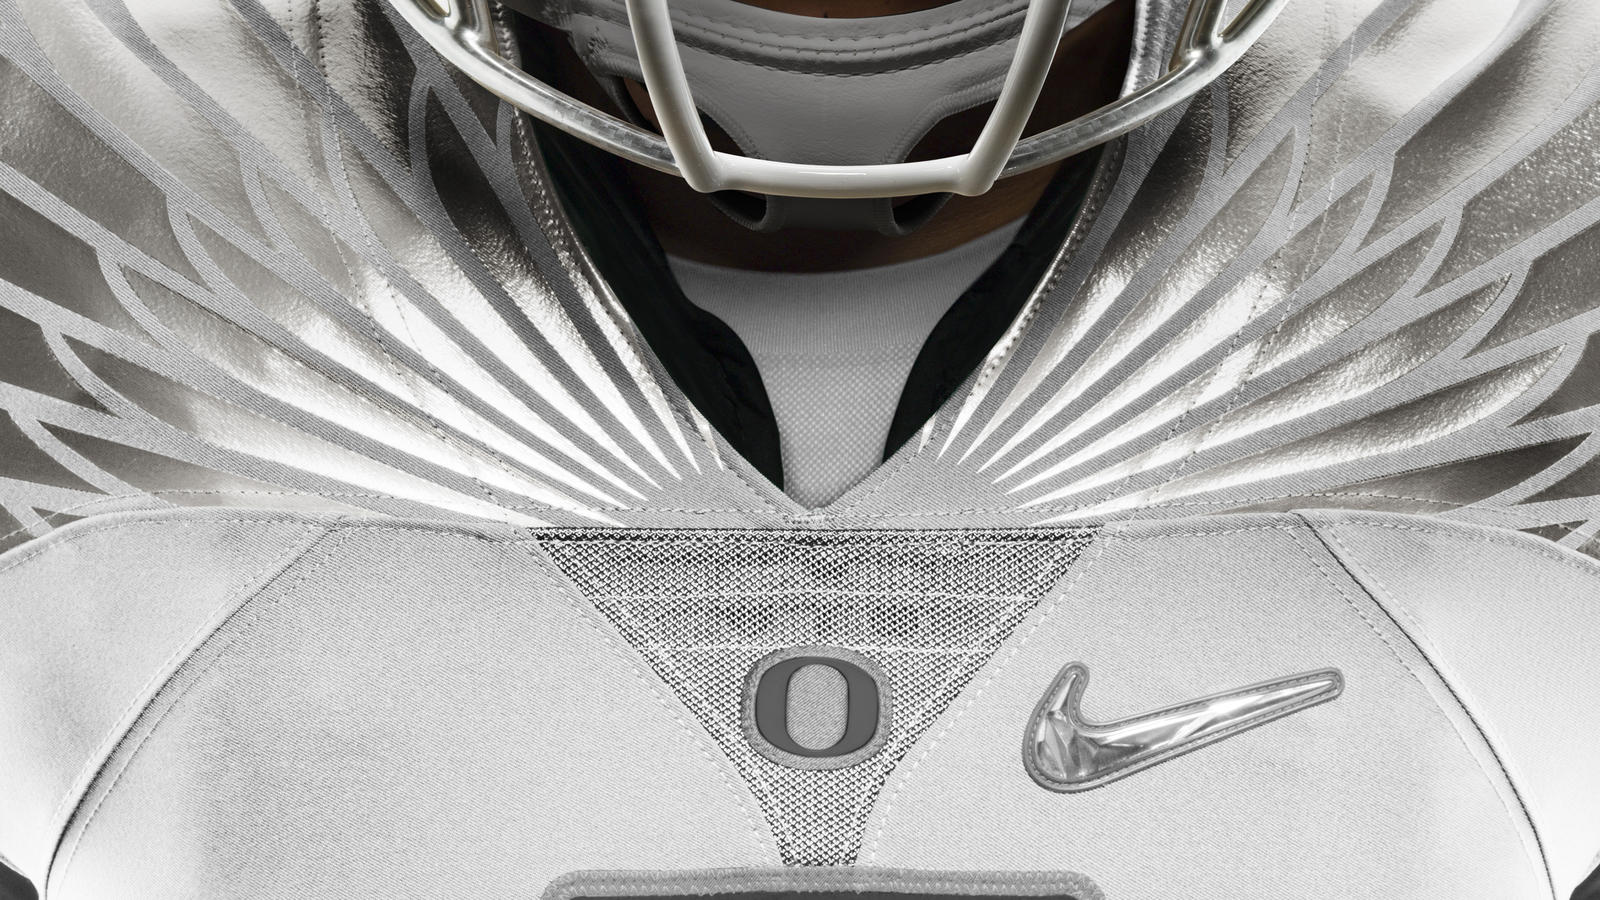 HO14_NFB_NCAA_Oregon_Details_613_RGB_crop_1_HR